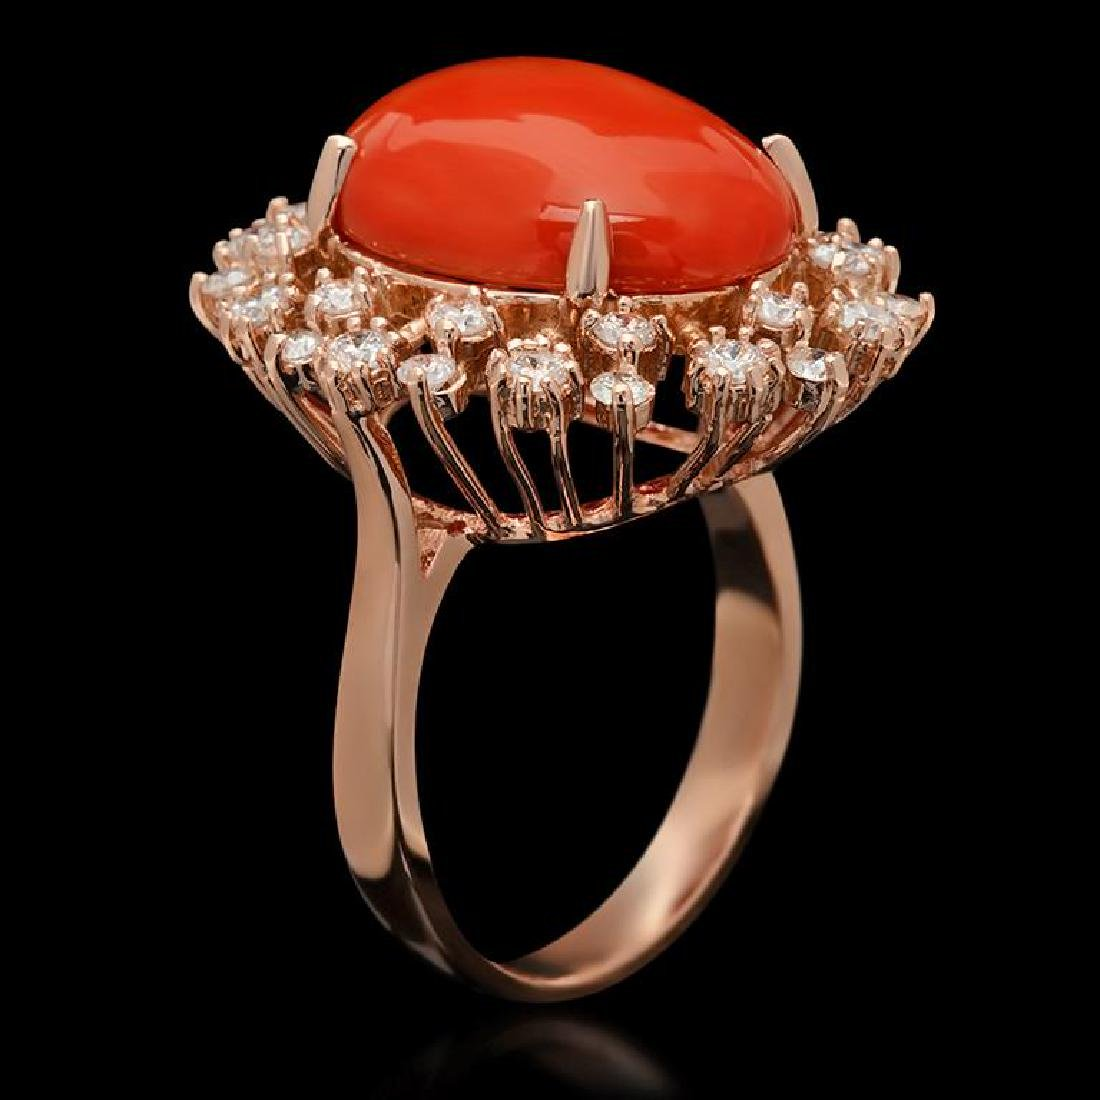 14K Gold 7.63ct Coral & 1.00ct Diamond Ring - 2